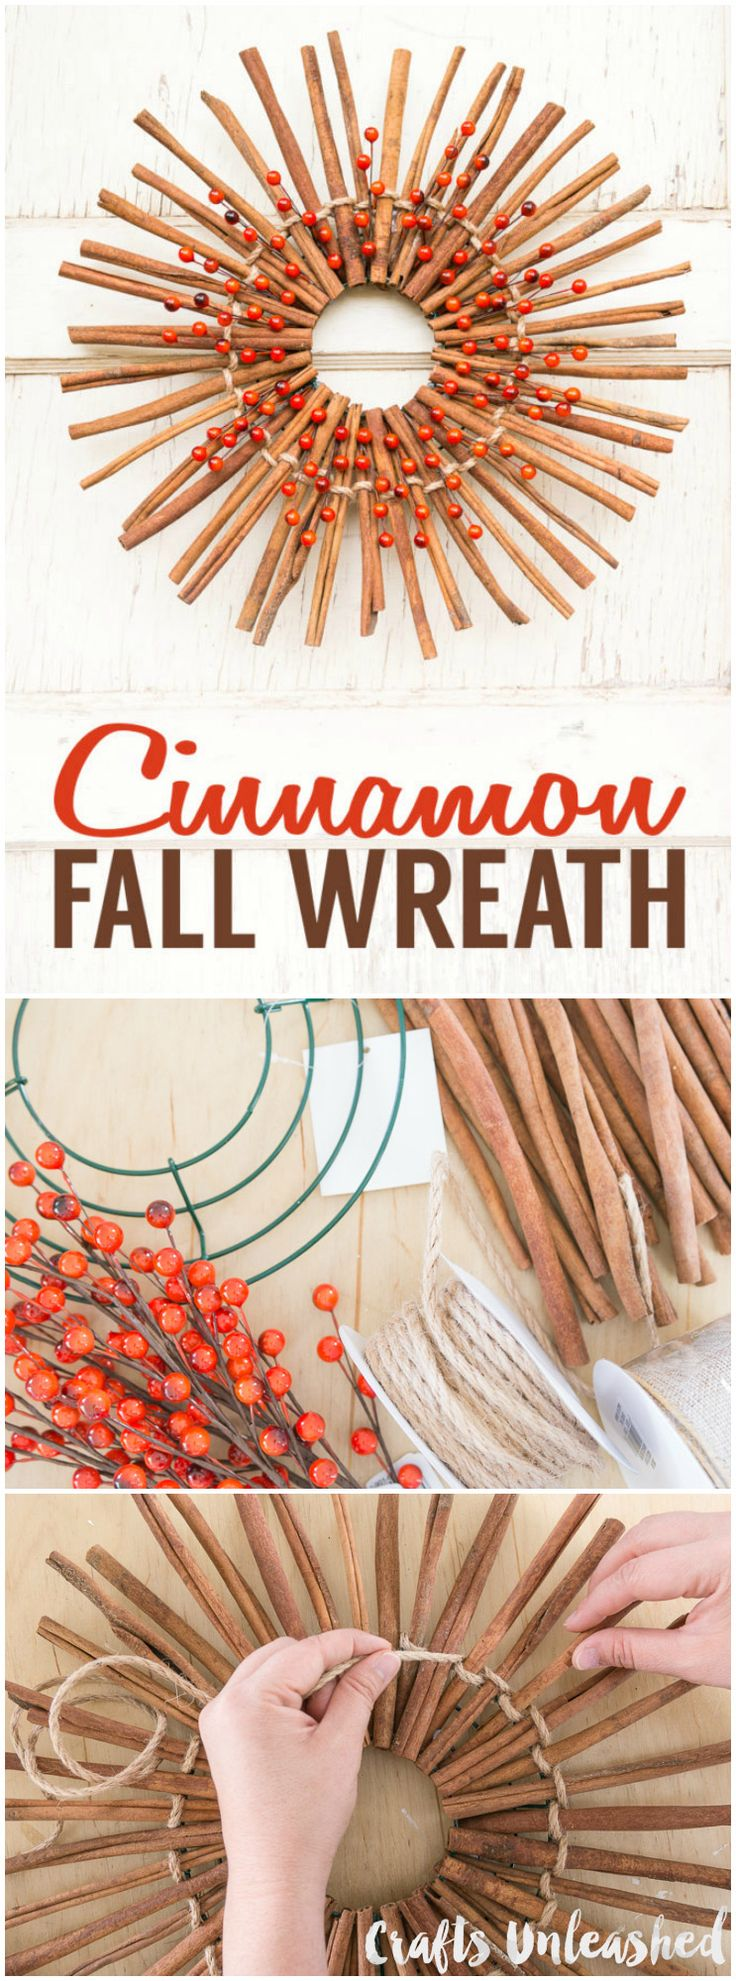 Cinnamon sticks for crafts - Cinnamon Stick Wreath For Fall Consumer Crafts